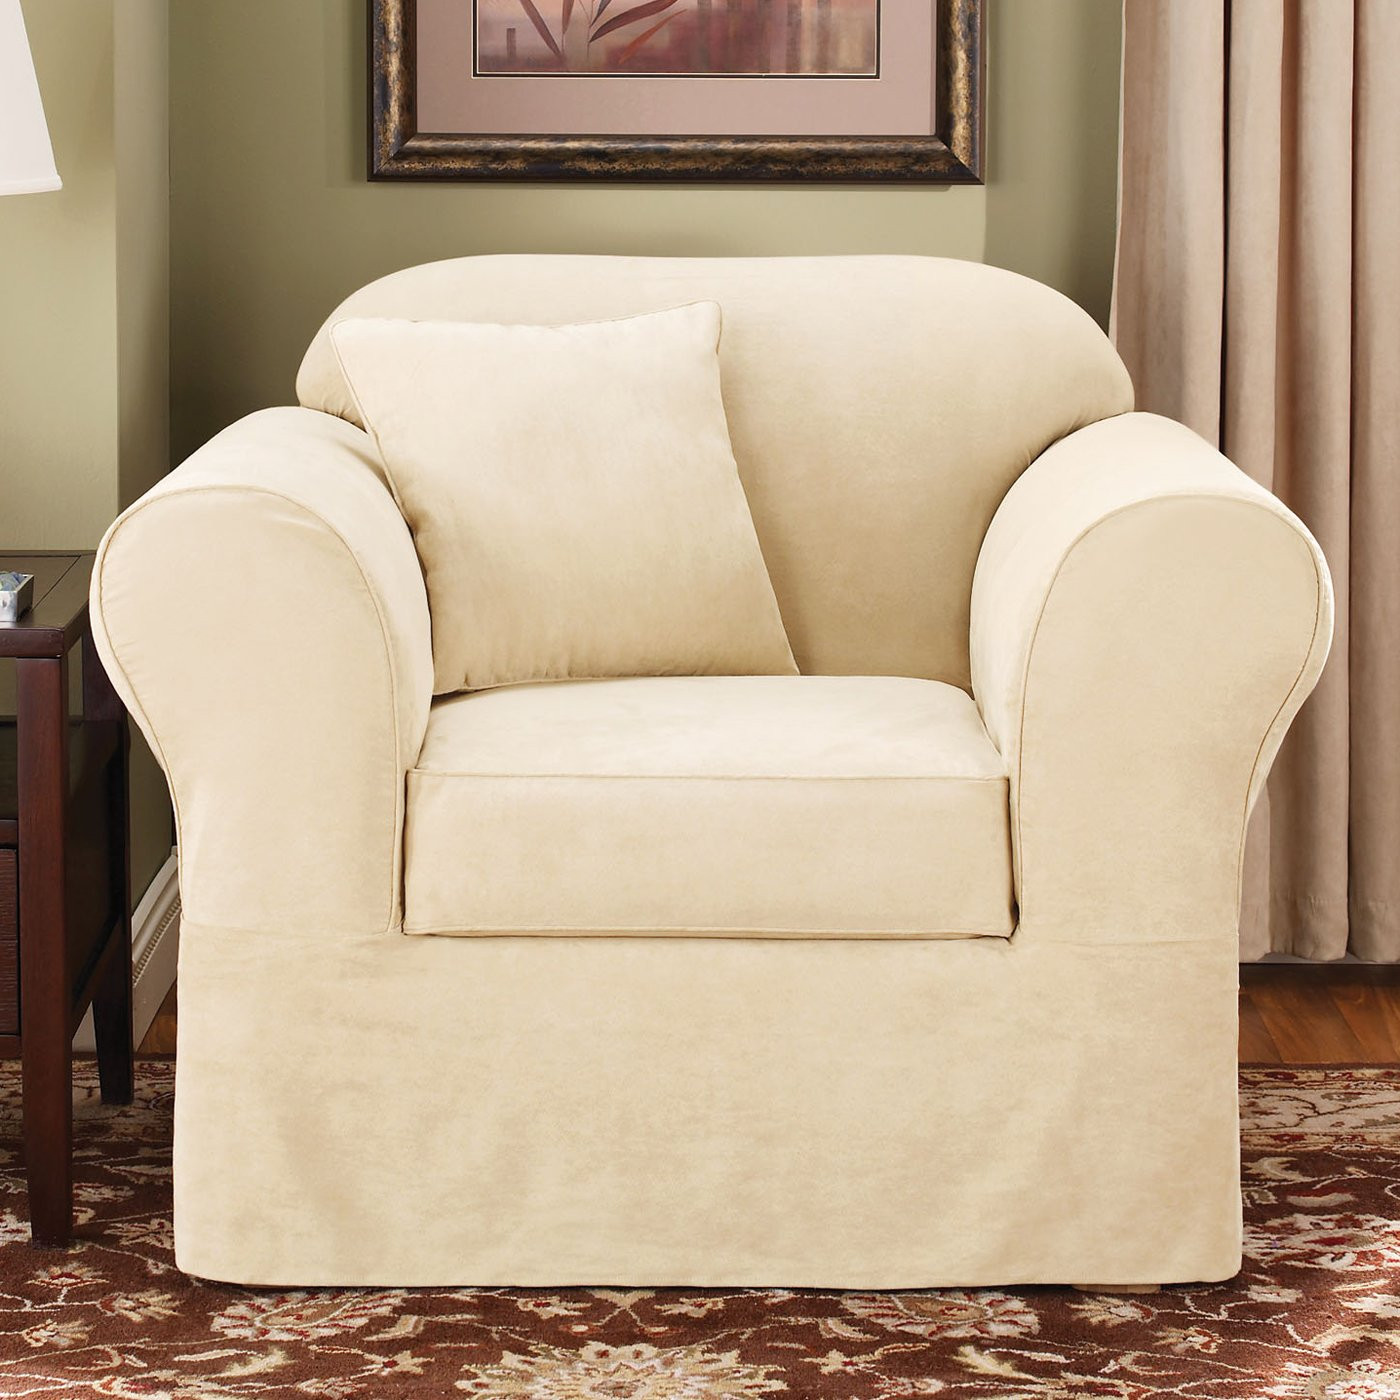 Best ideas about Sure Fit Chair Covers . Save or Pin Sure Fit Slipcovers Suede Supreme Chair Slipcover Now.